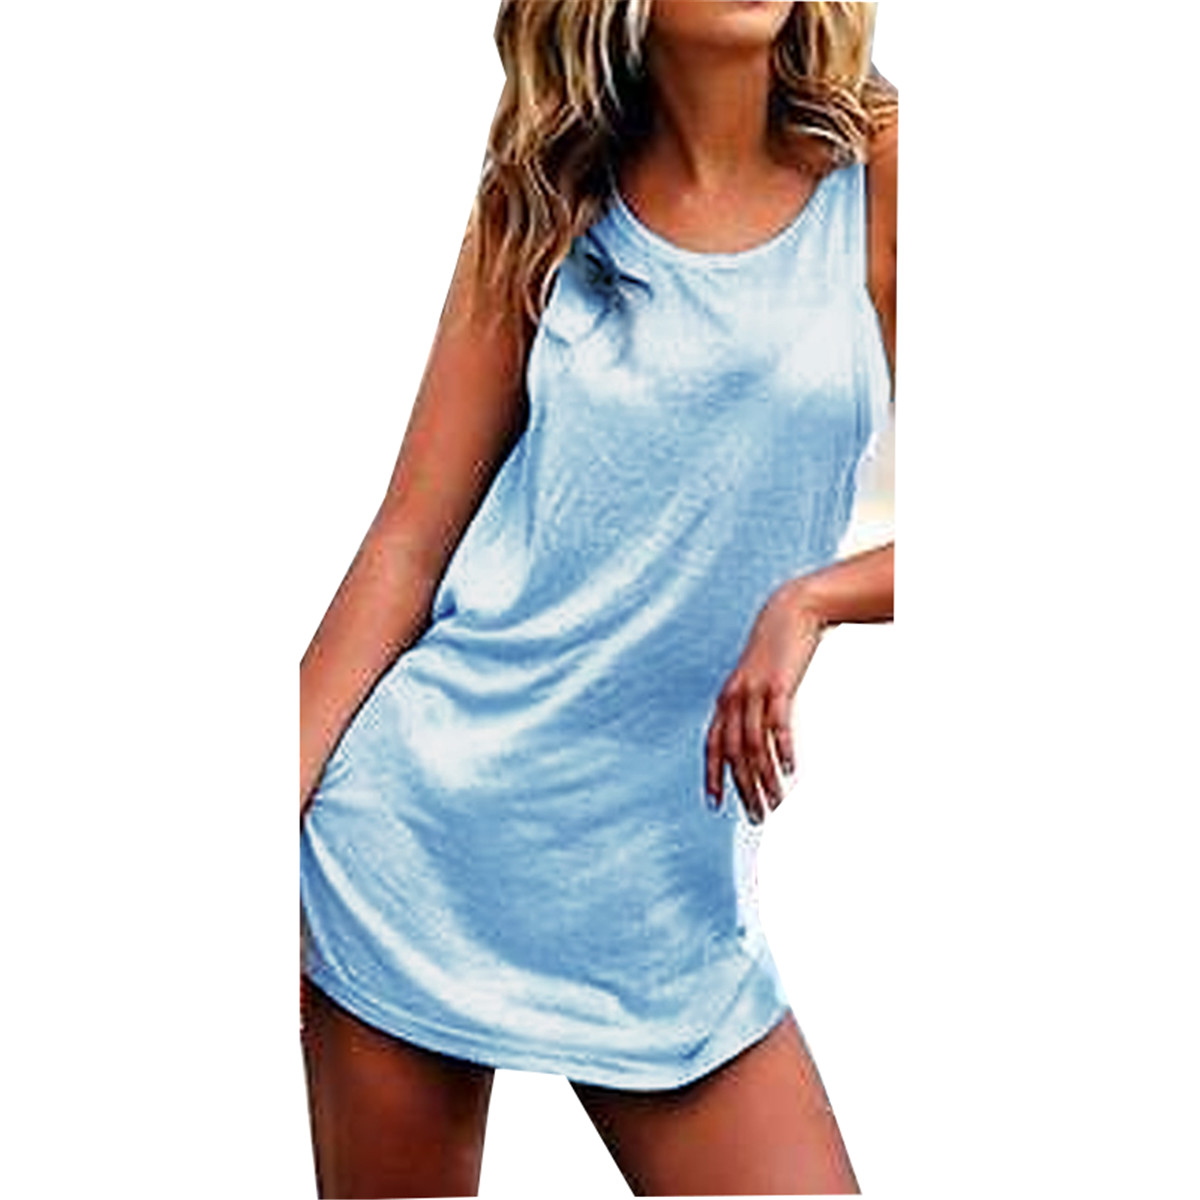 Blusas 2016 Summer Style Women Casual Solid Blouses Tops Sexy Ladies Backless Strapless Shirts Short Mini Vest Dress Plus Size(China (Mainland))